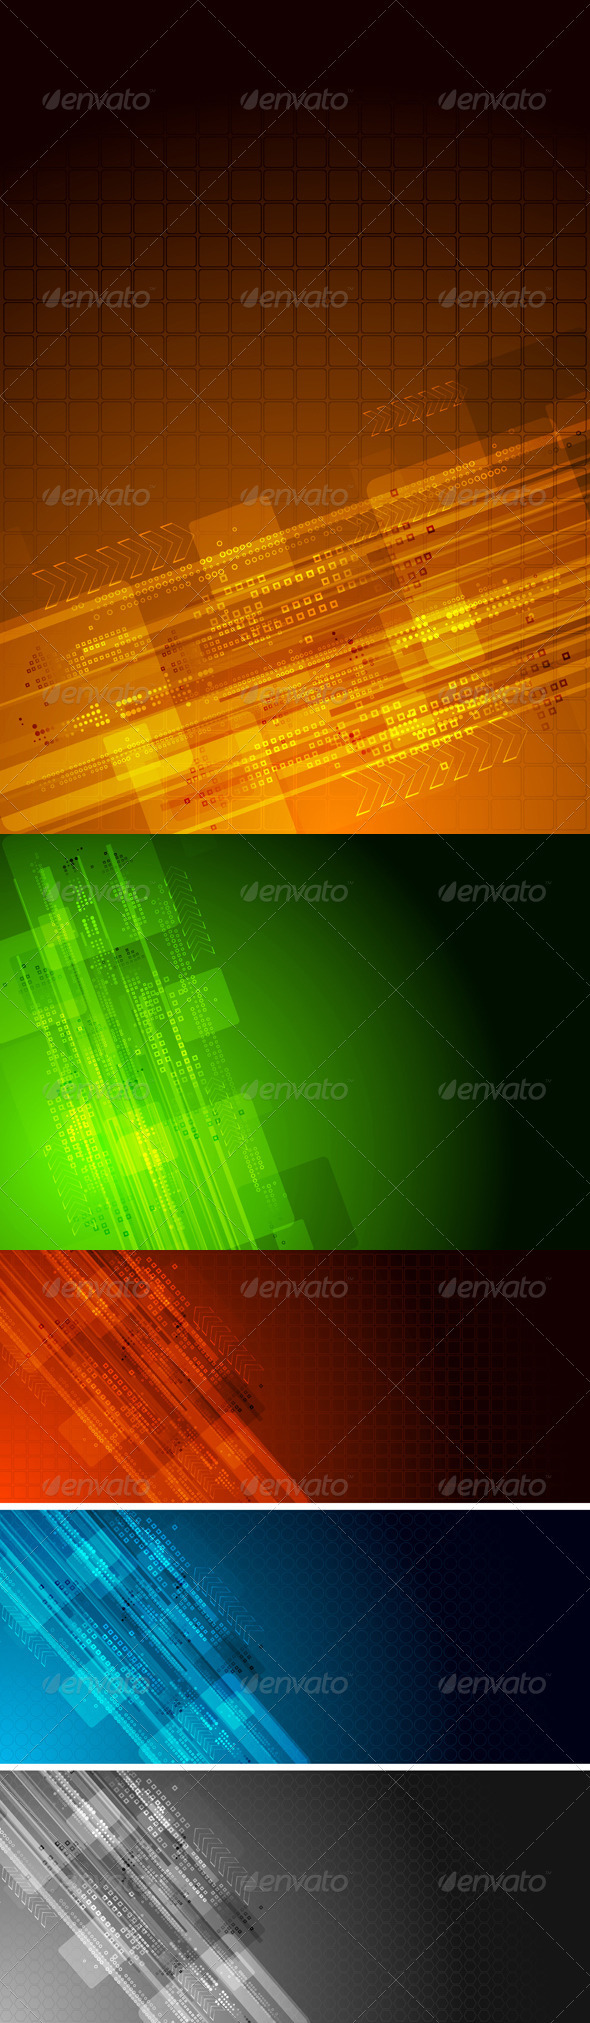 Abstract hi-tech backgrounds - Backgrounds Decorative